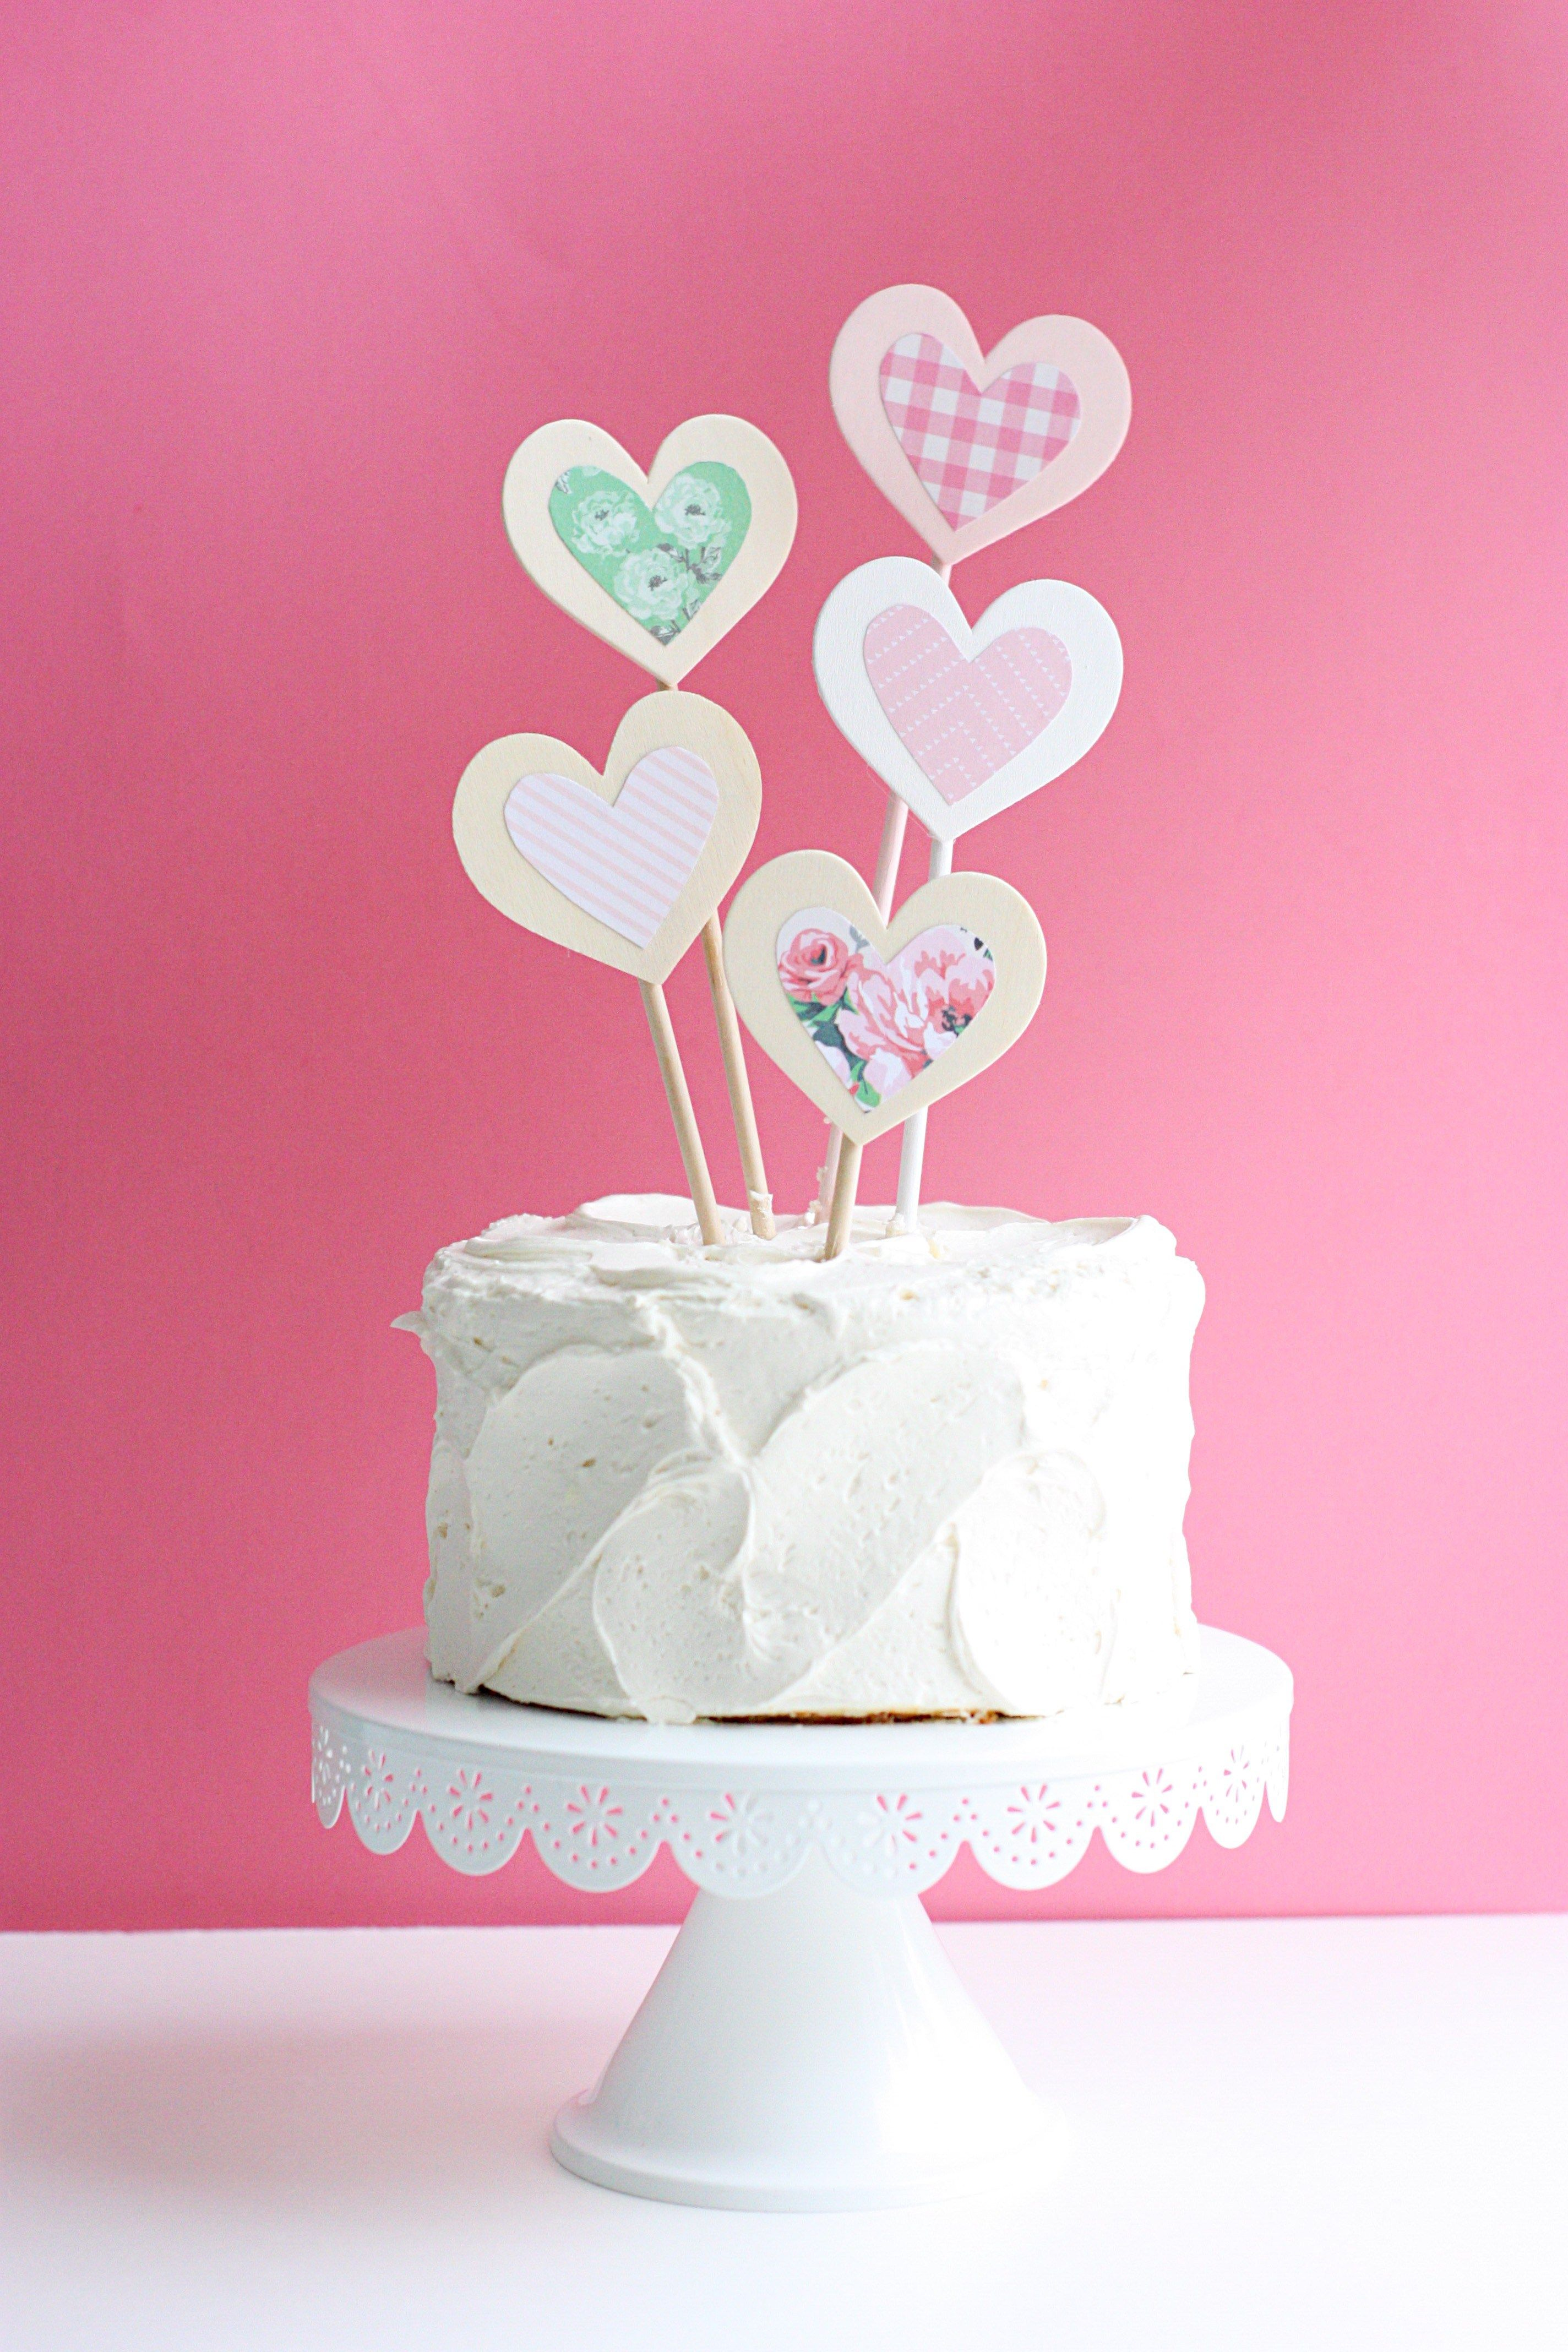 Diy Layered Heart Cake Topper Diy Cake Topper Heart Cake Topper